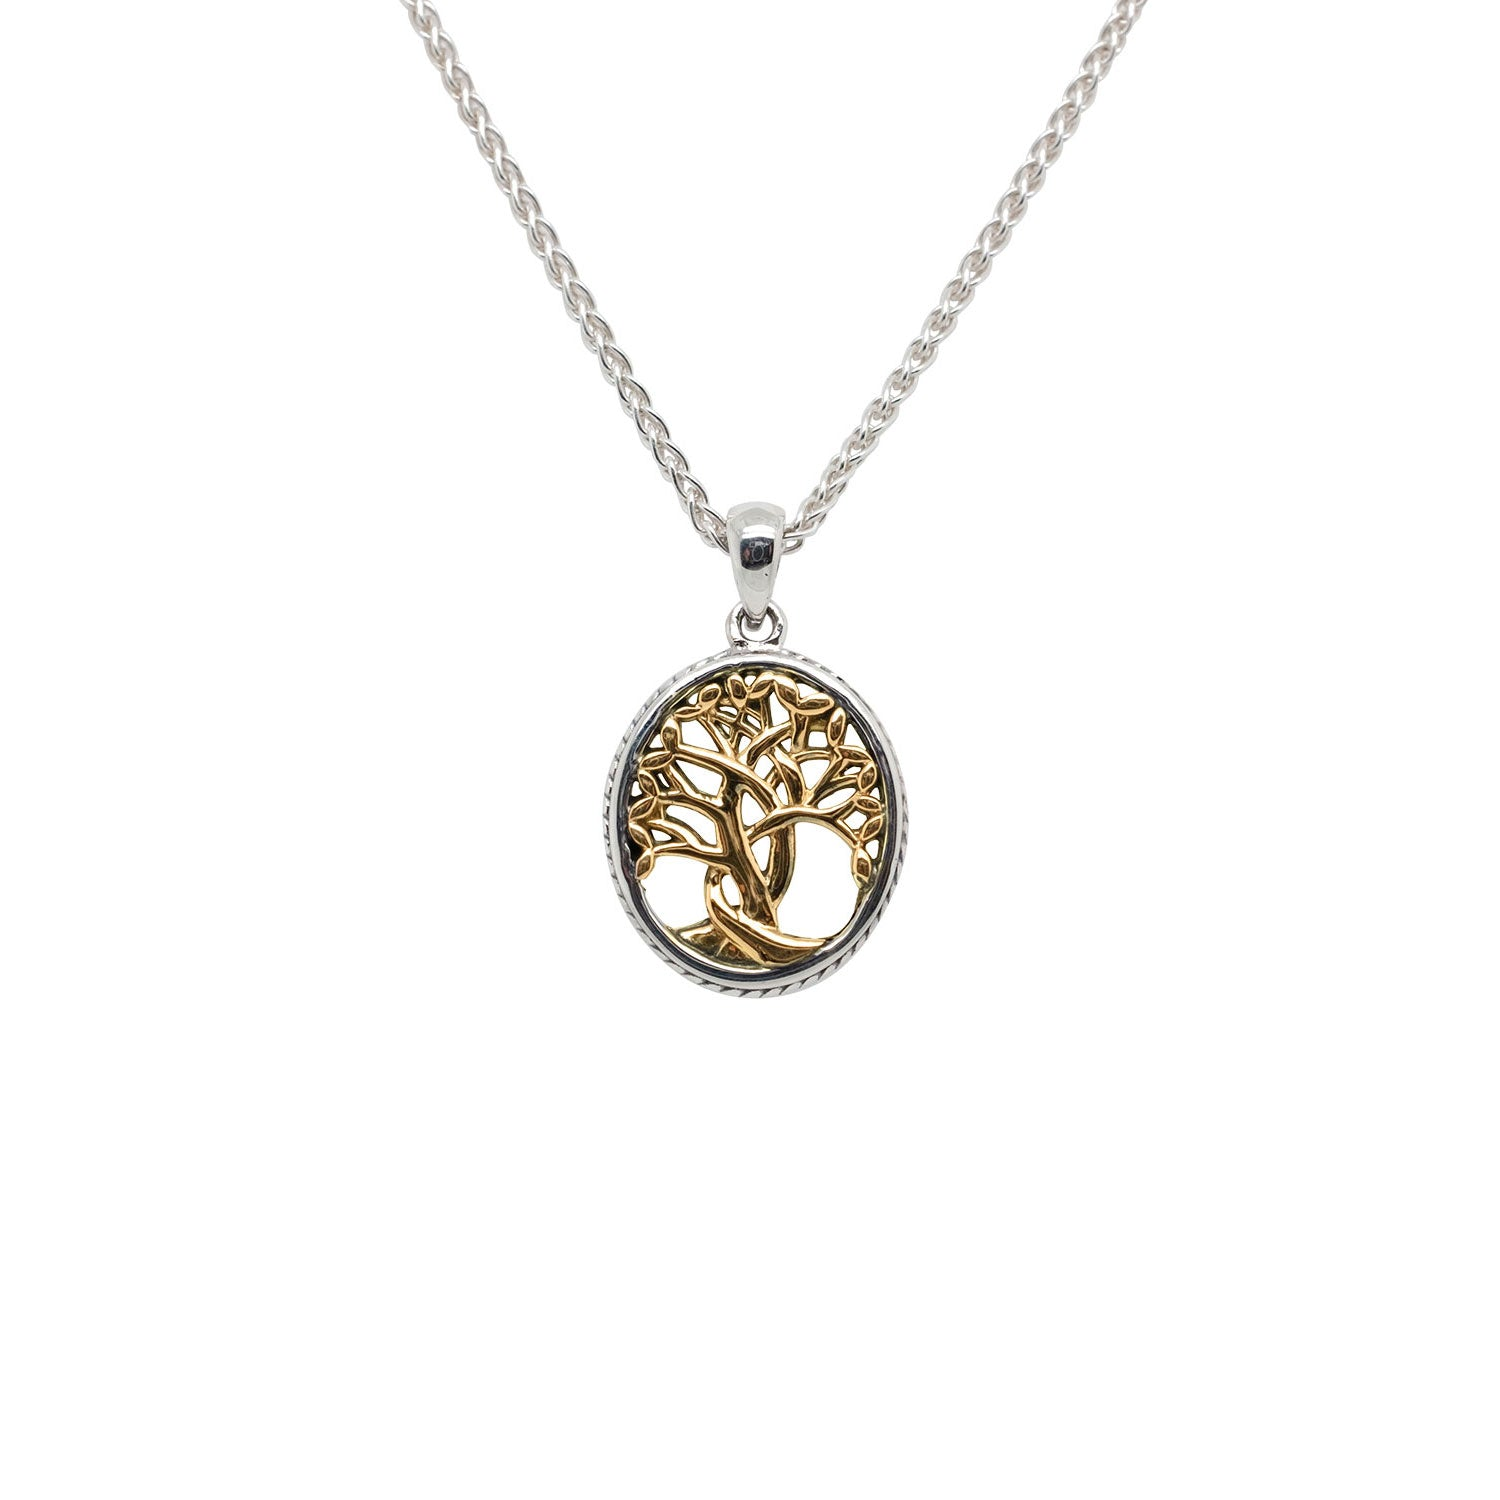 Pendant 10k Yellow Tree of Life Pendant Petite from welch and company jewelers near syracuse ny